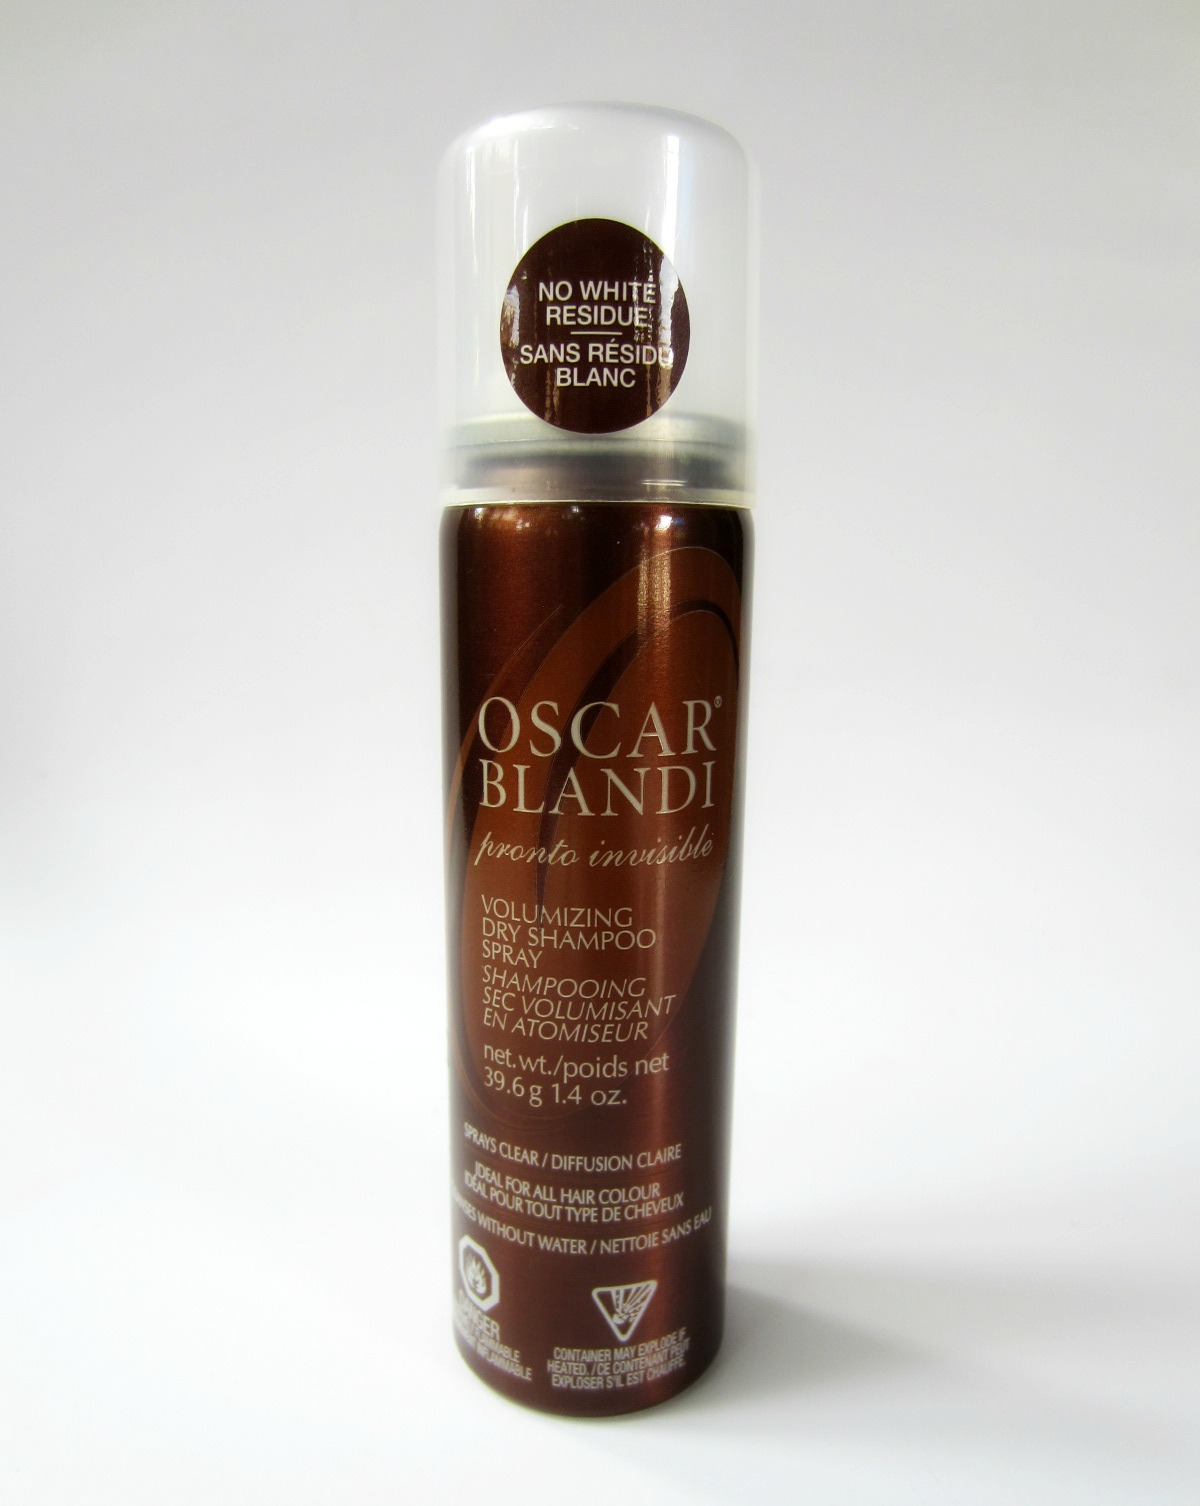 This Oscar Blandi Jasmine Oil Serum provides instant and long-lasting shine to all hair types. Minimizes frizz and flyaways. Strengthens and moisturizes to help protect hair from heat damage.